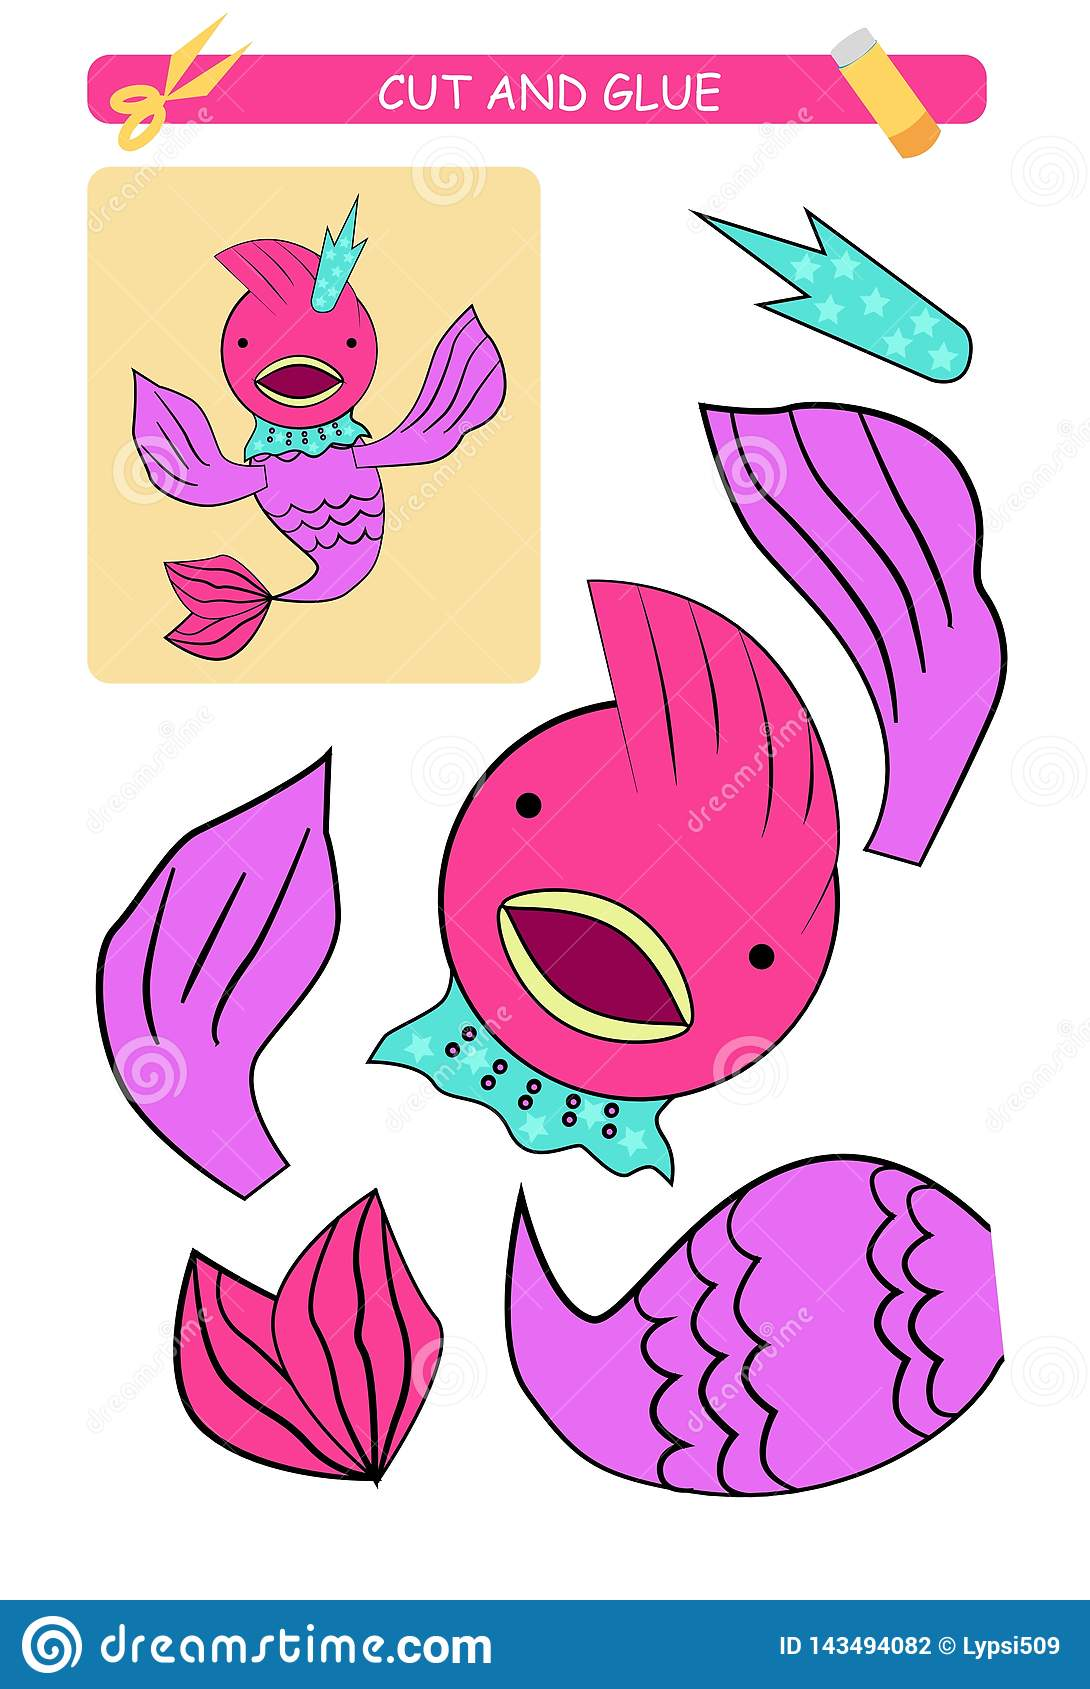 Cut And Glue Worksheet Fish Educational Game For Kids